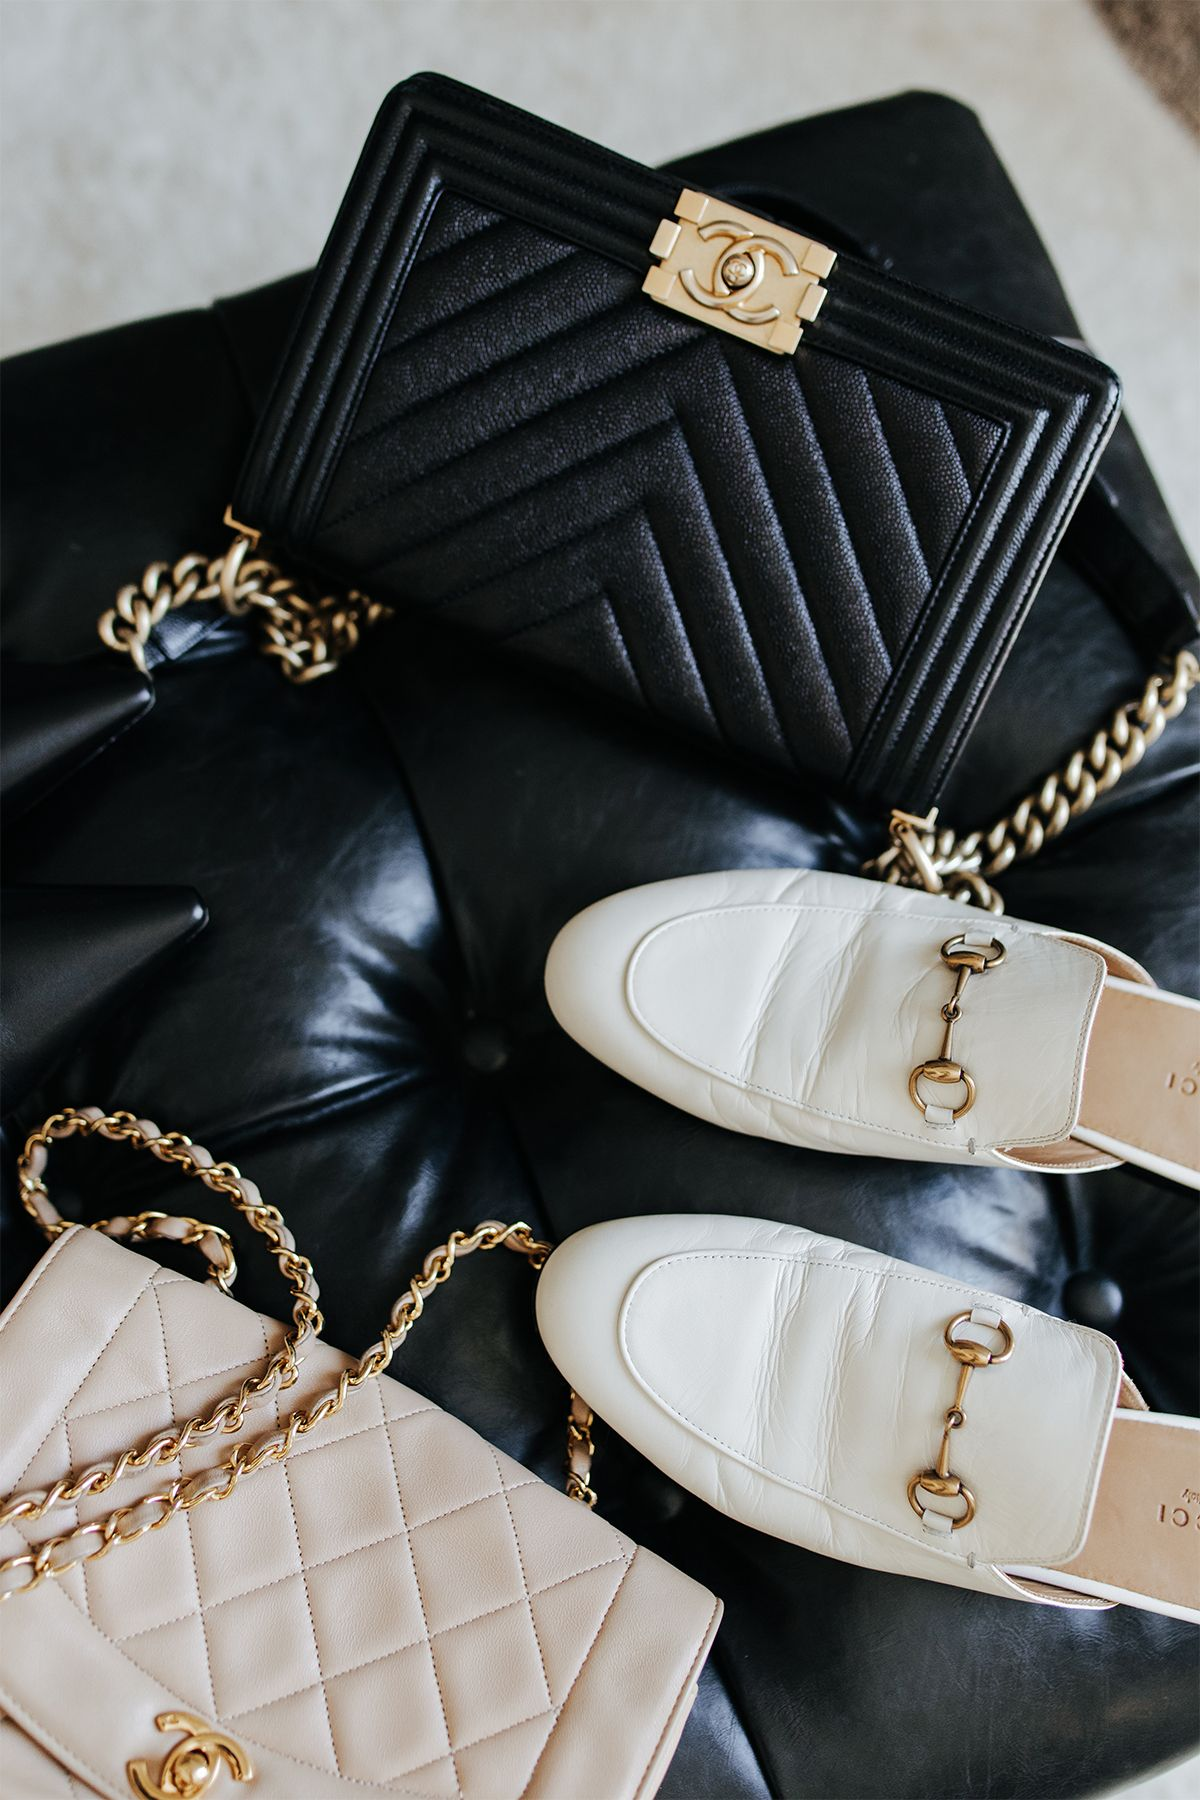 How To Shop For Discounted Designer Items On Ebay Chanel Handbag Boy Chanel Boy Bag Outfit Chanel Handbags Collection